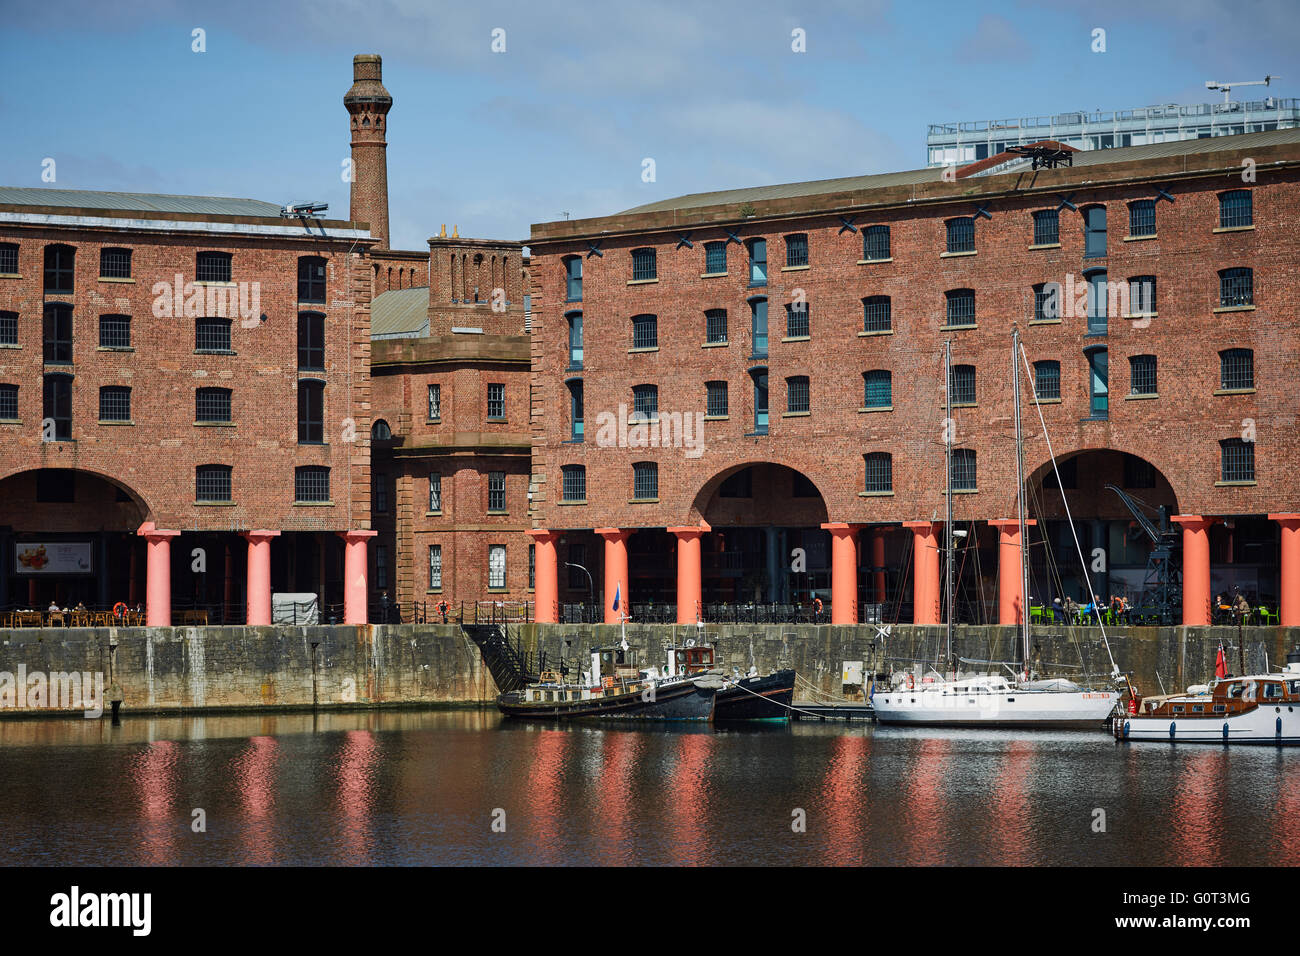 Liverpool albert dock buildings   close up detail exterior The Albert Dock is a complex of dock buildings and warehouses - Stock Image